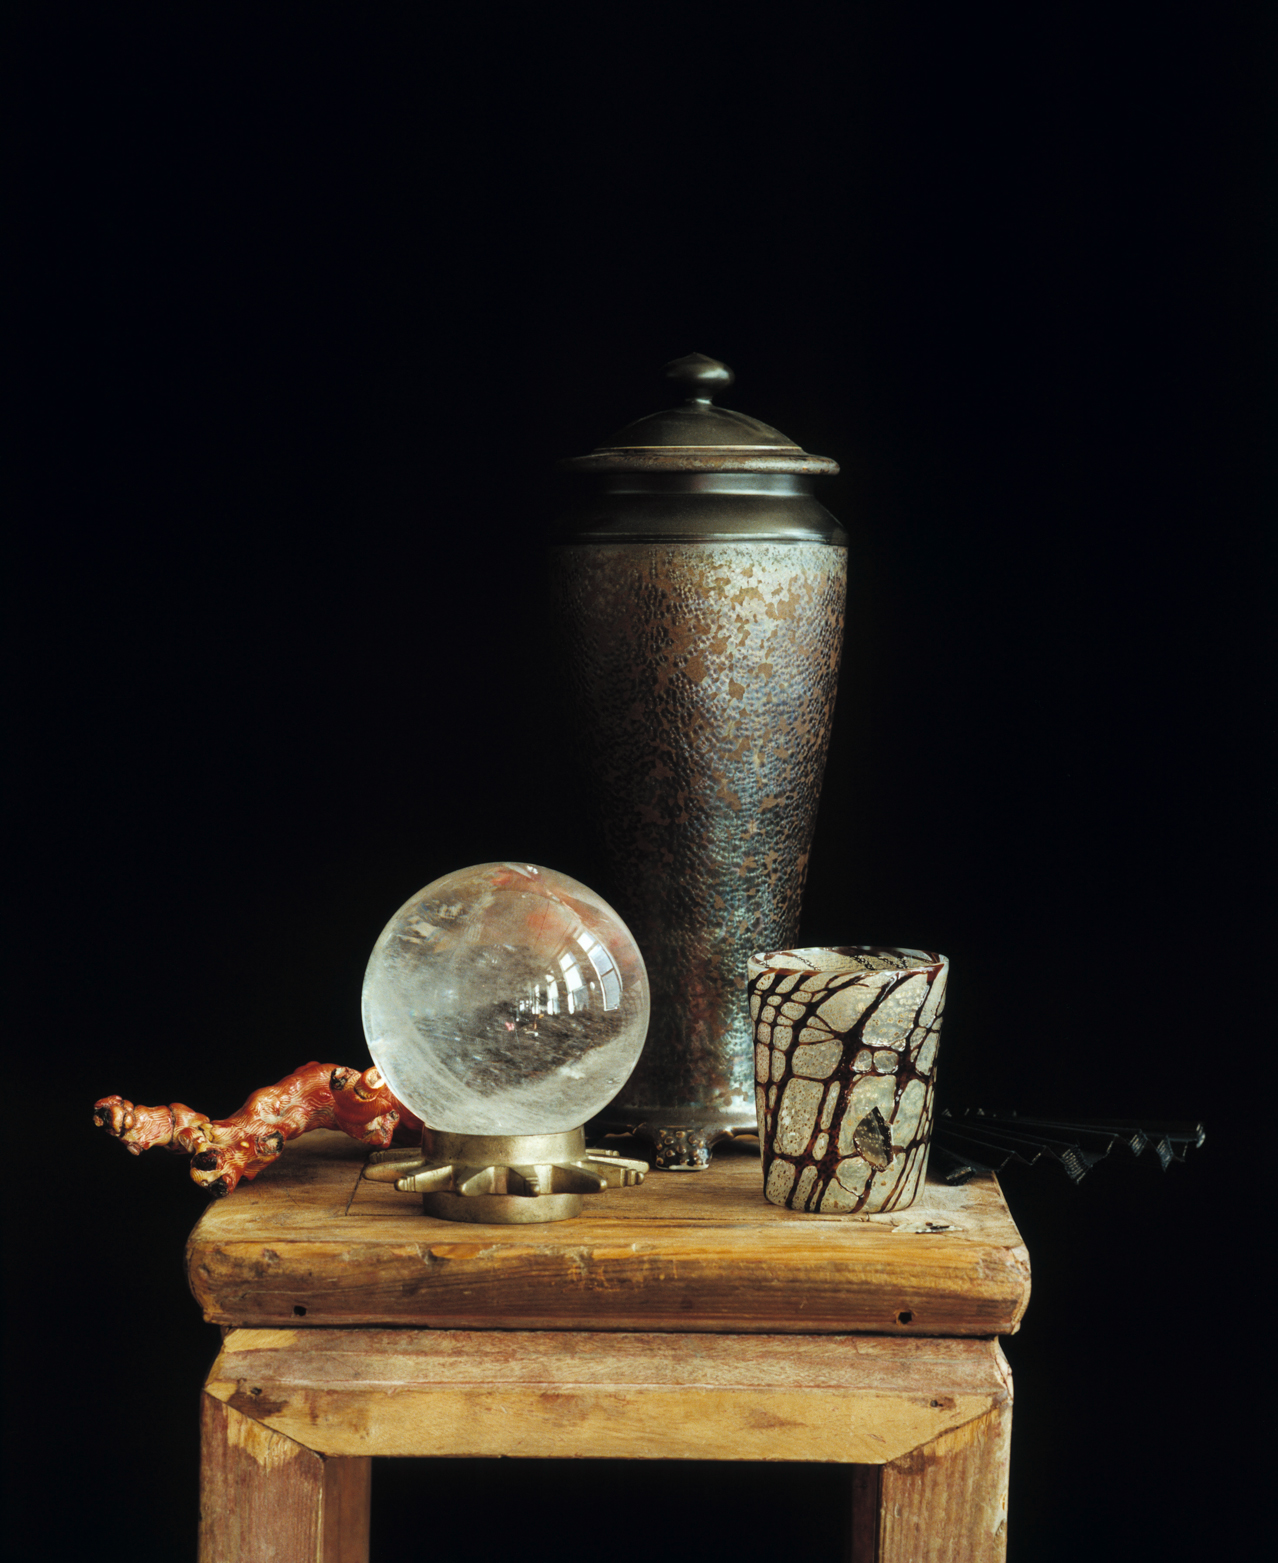 Still life with a crystal ball.jpg